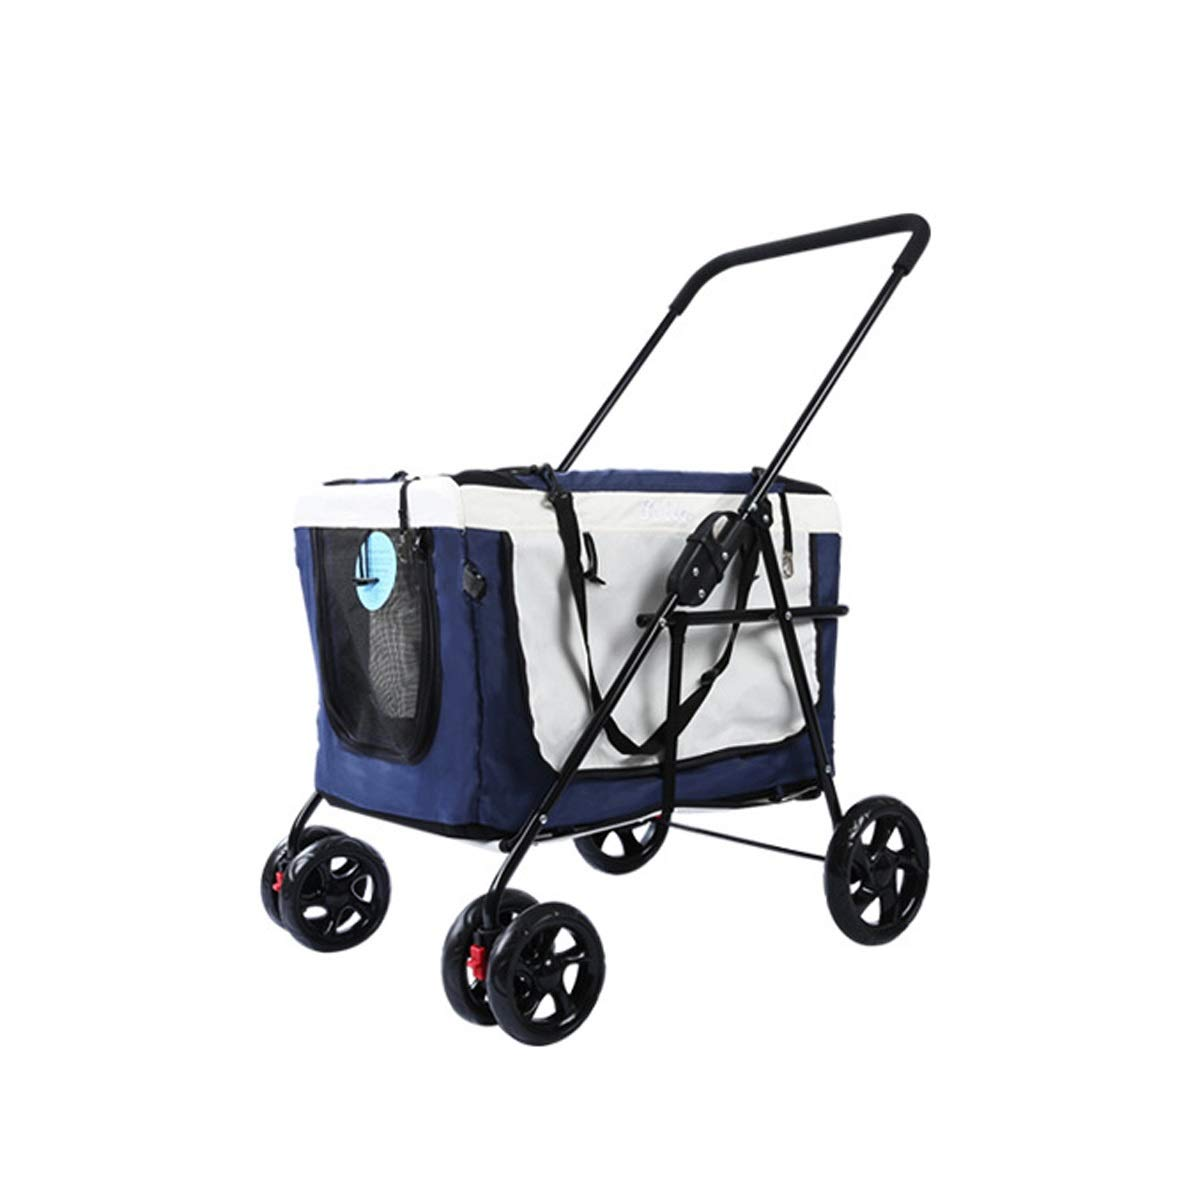 bluee WLDD Four Wheel Pet Stroller, 3-in-1 Soft ,Sided Detachable Pet Carrier Travel Crate and Pet Stroller Bearing 20KG (color   bluee)